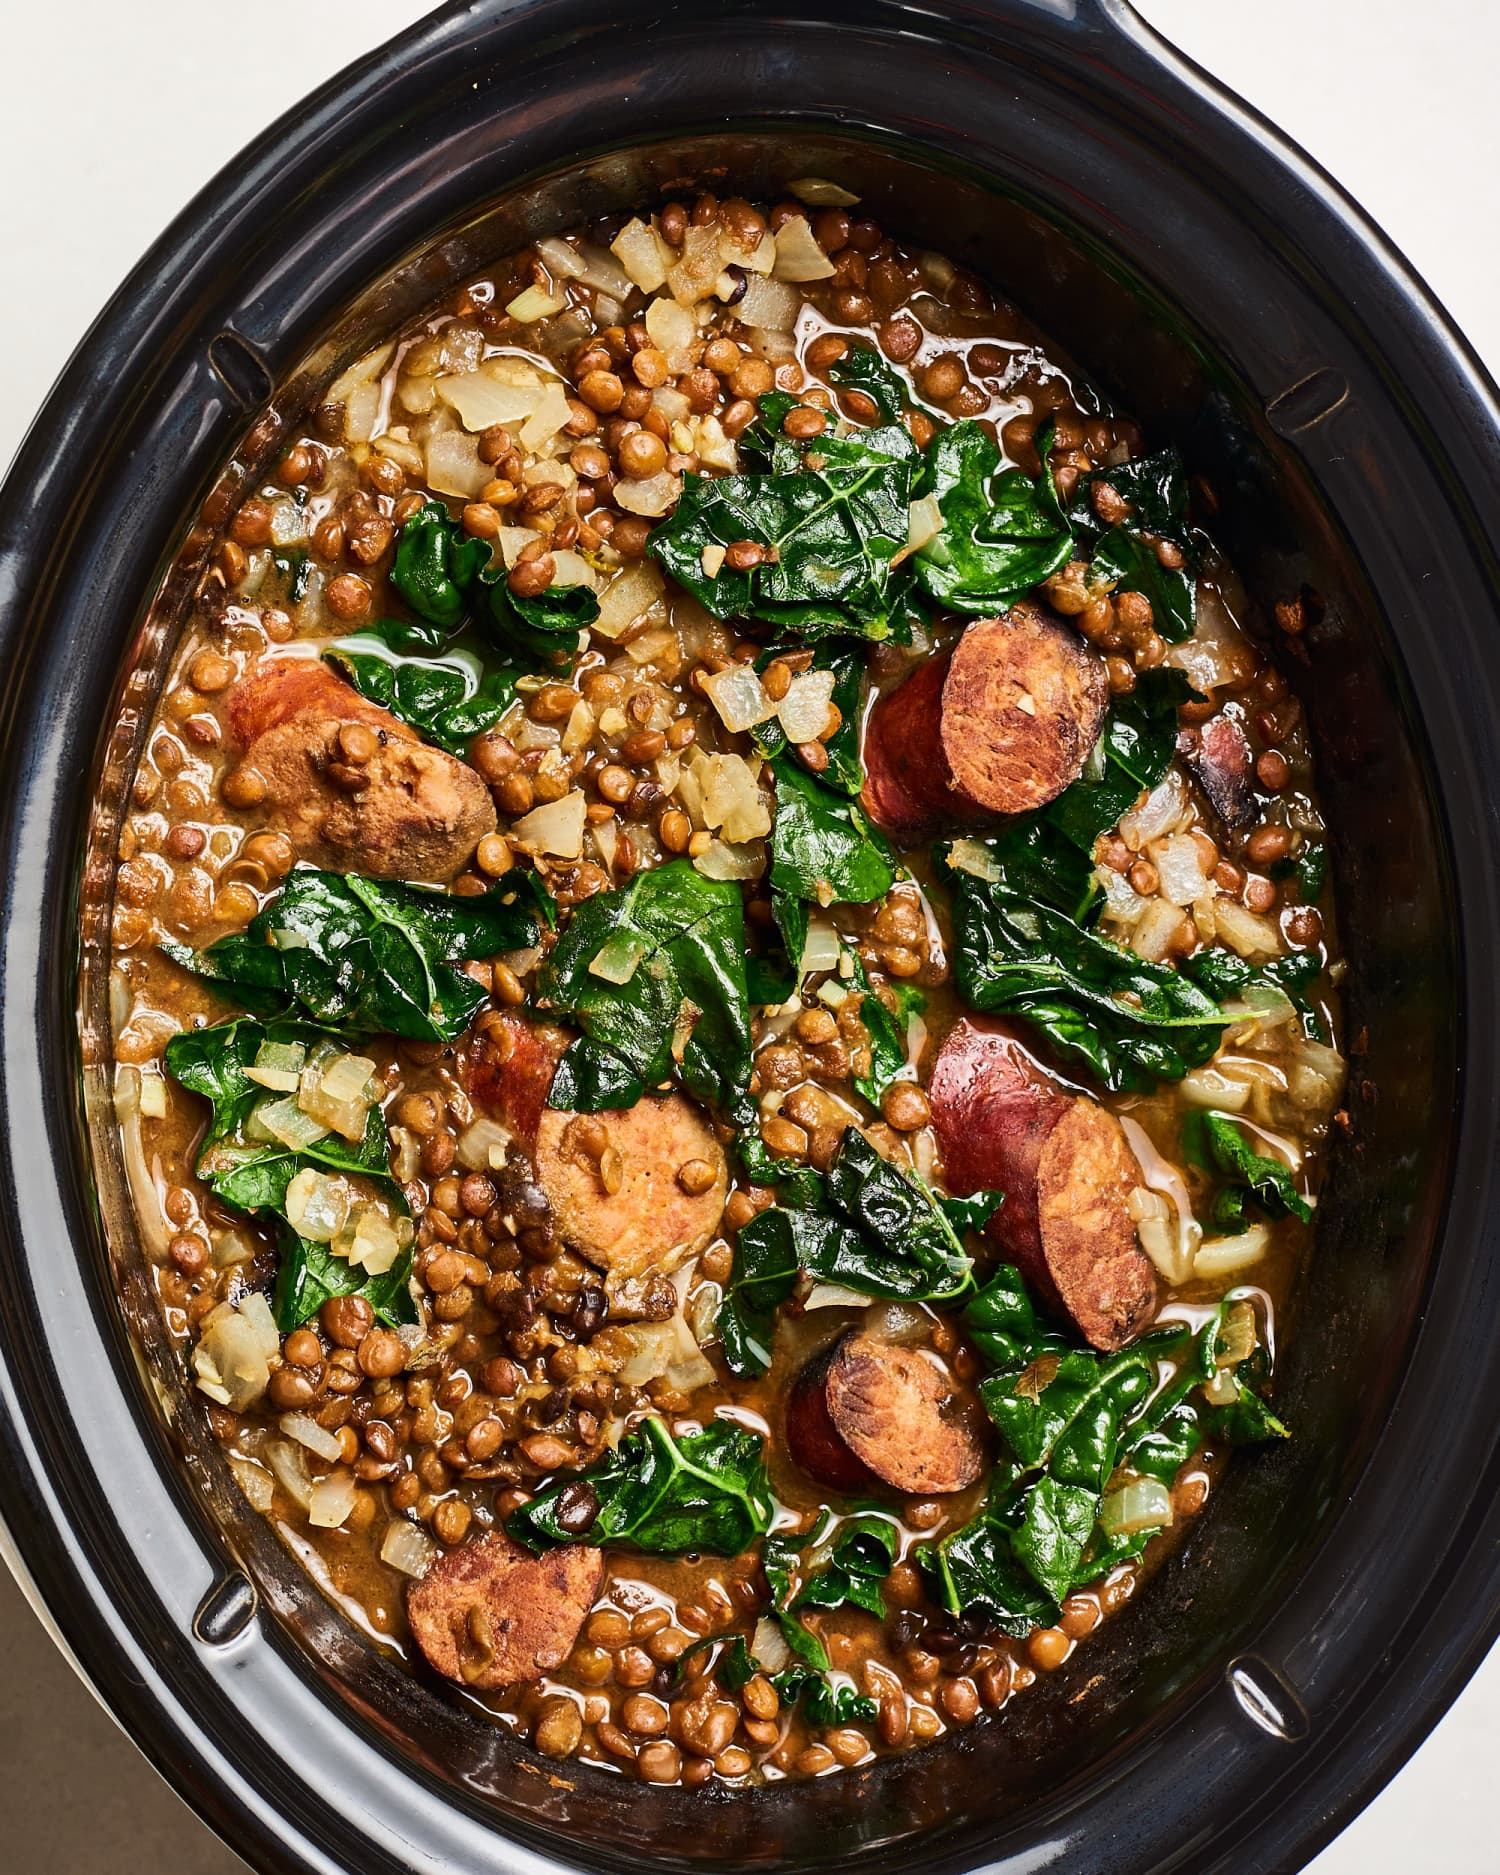 Recipe: Slow Cooker Sausage and Lentil Stew